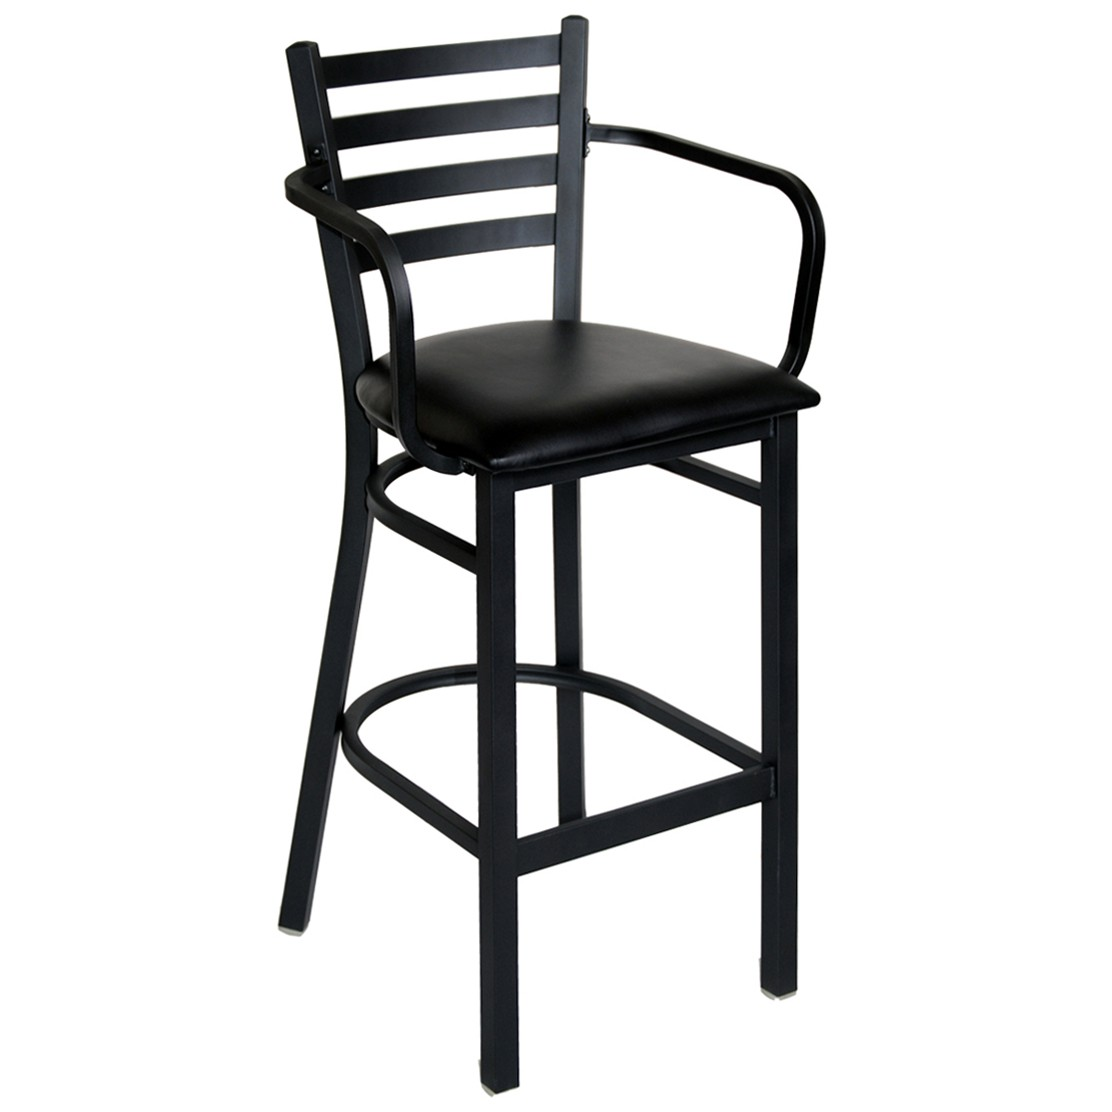 Back Metal Bar Stool With Arms